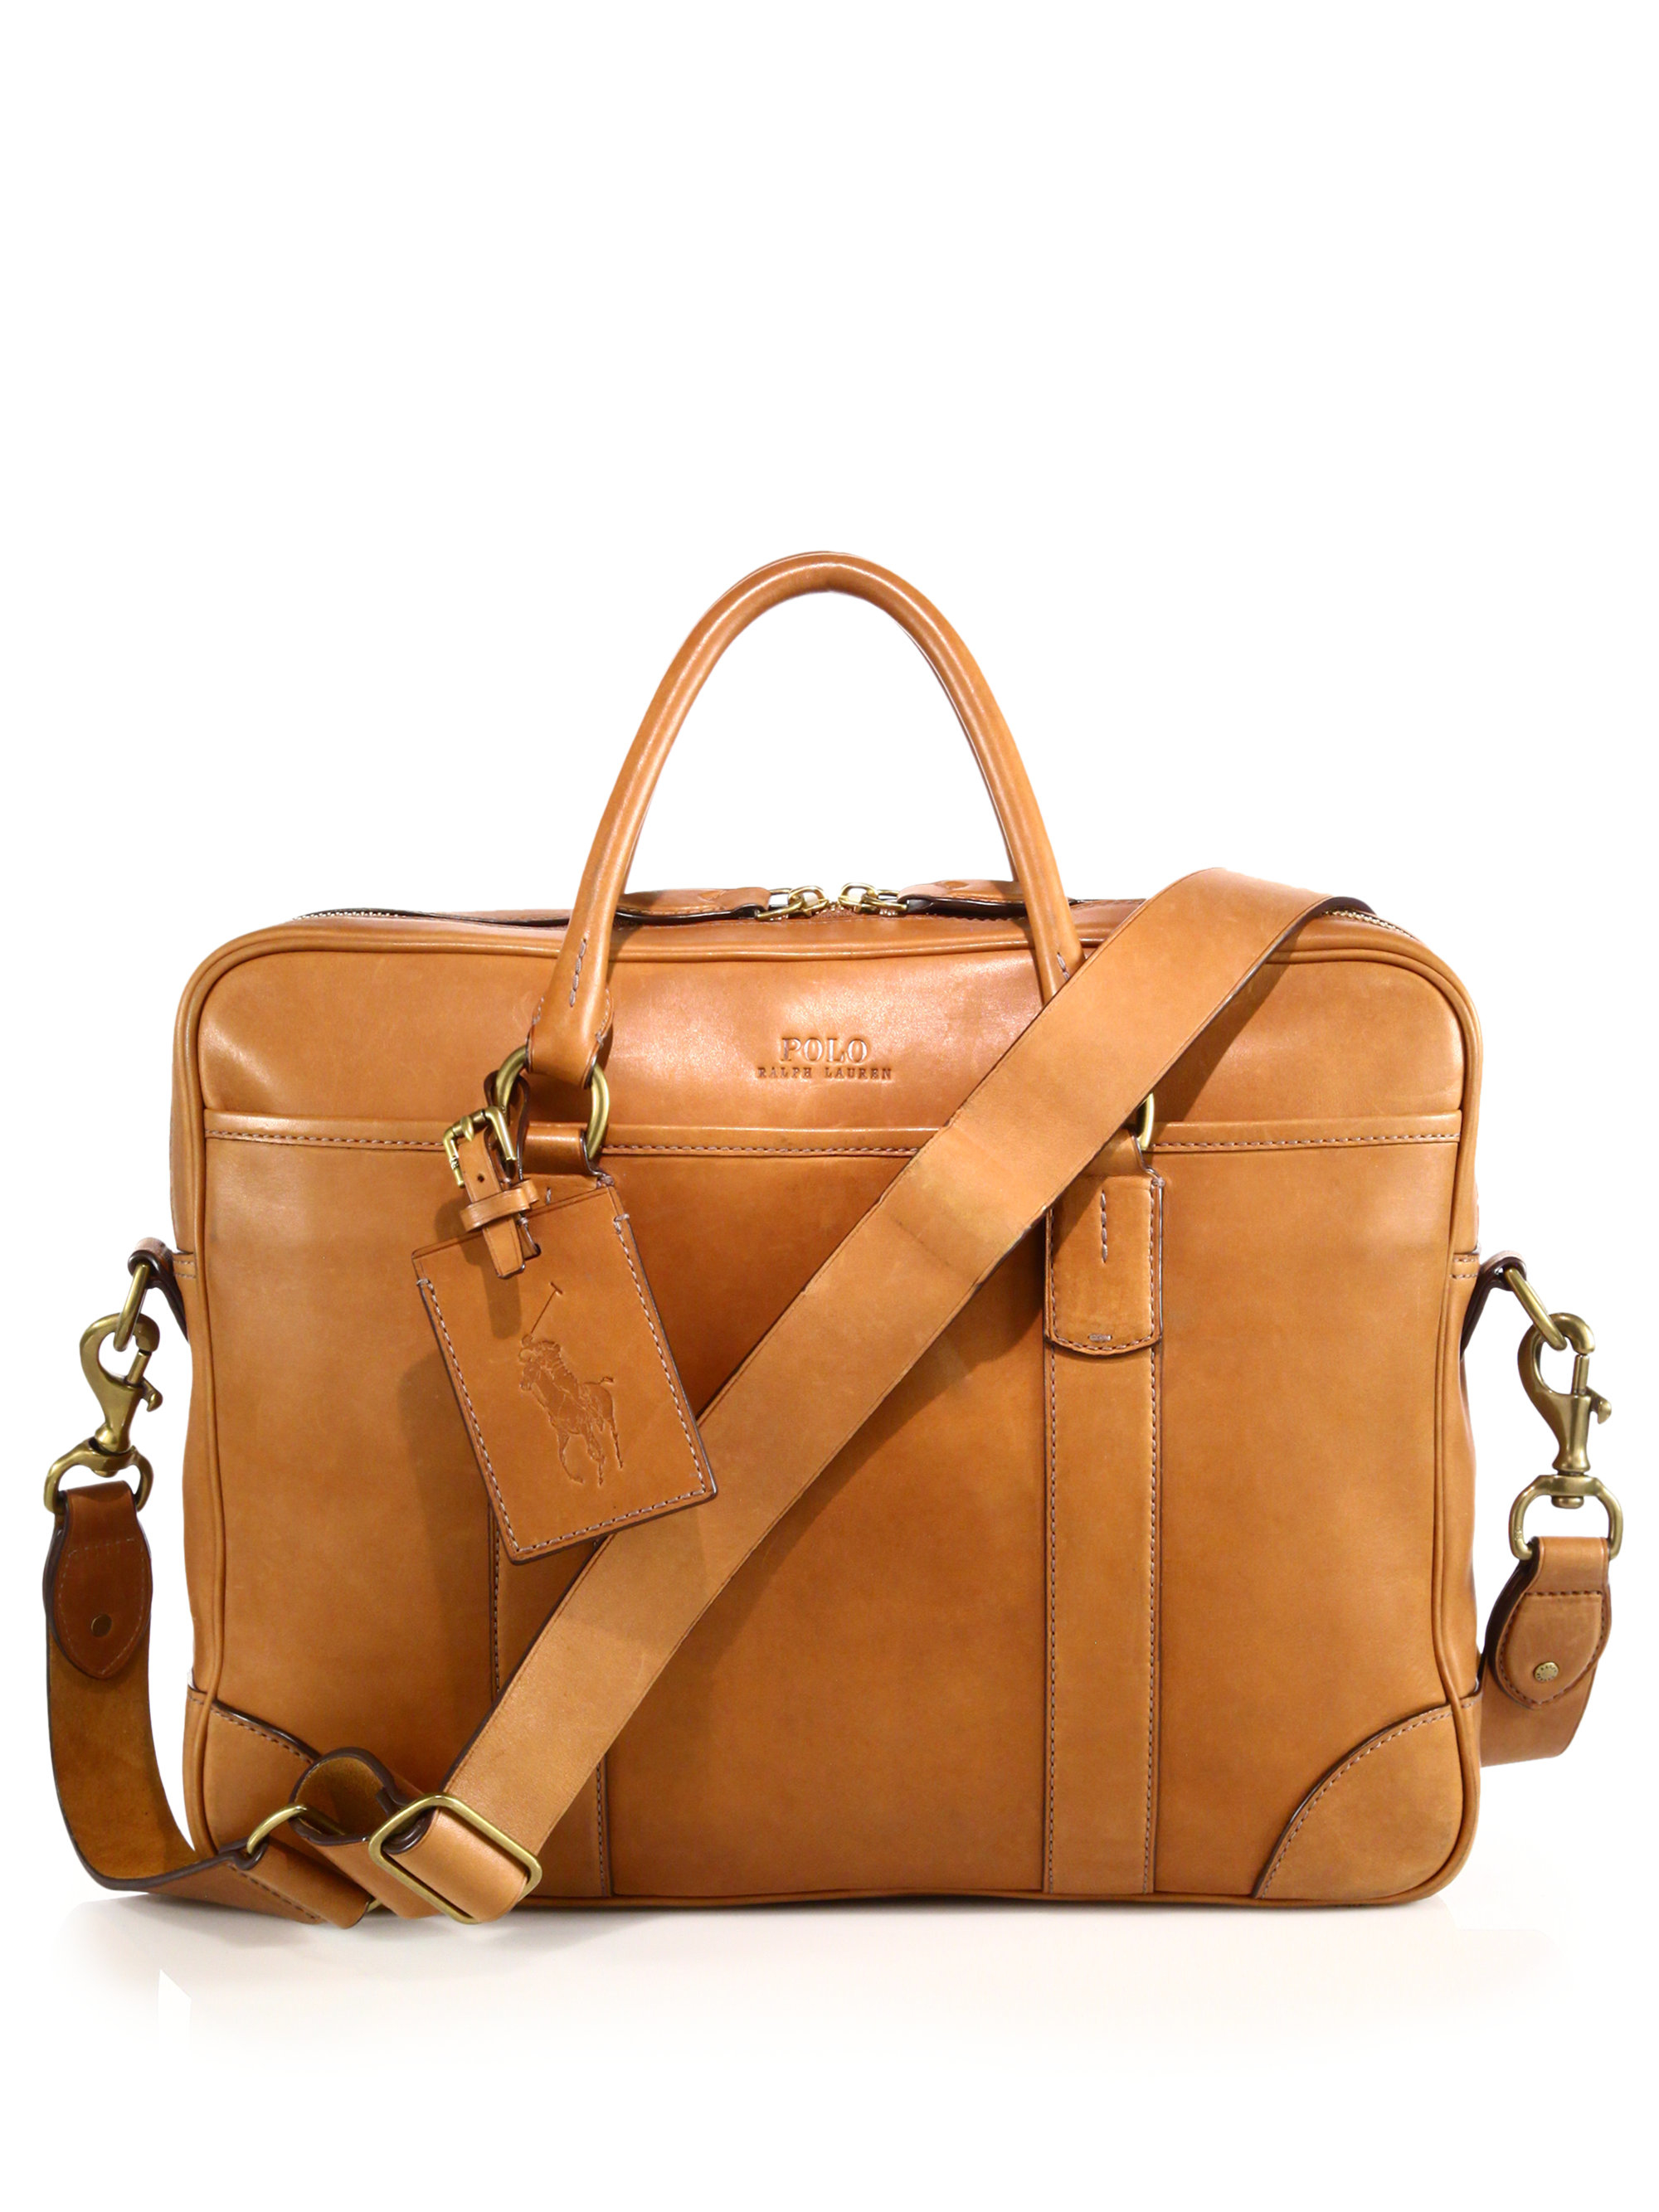 0630cc266ff4 Lyst - Polo Ralph Lauren Leather Commuter Bag in Brown for Men